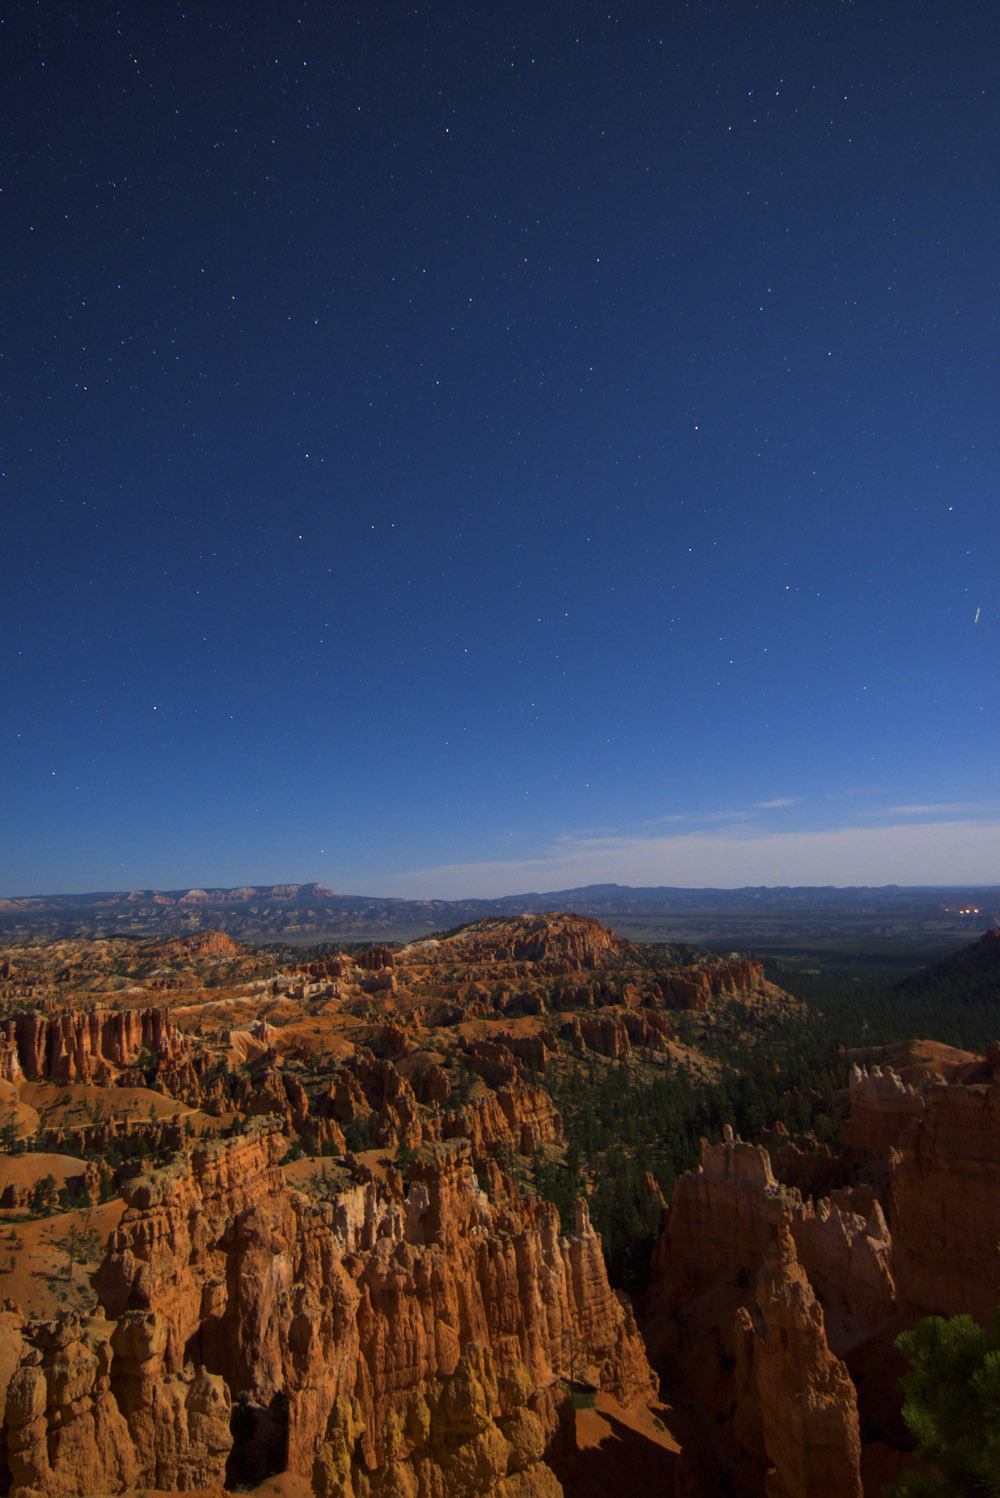 Later in the evening as the stars become visible over Bryce Canyon. © Robert Lowdon